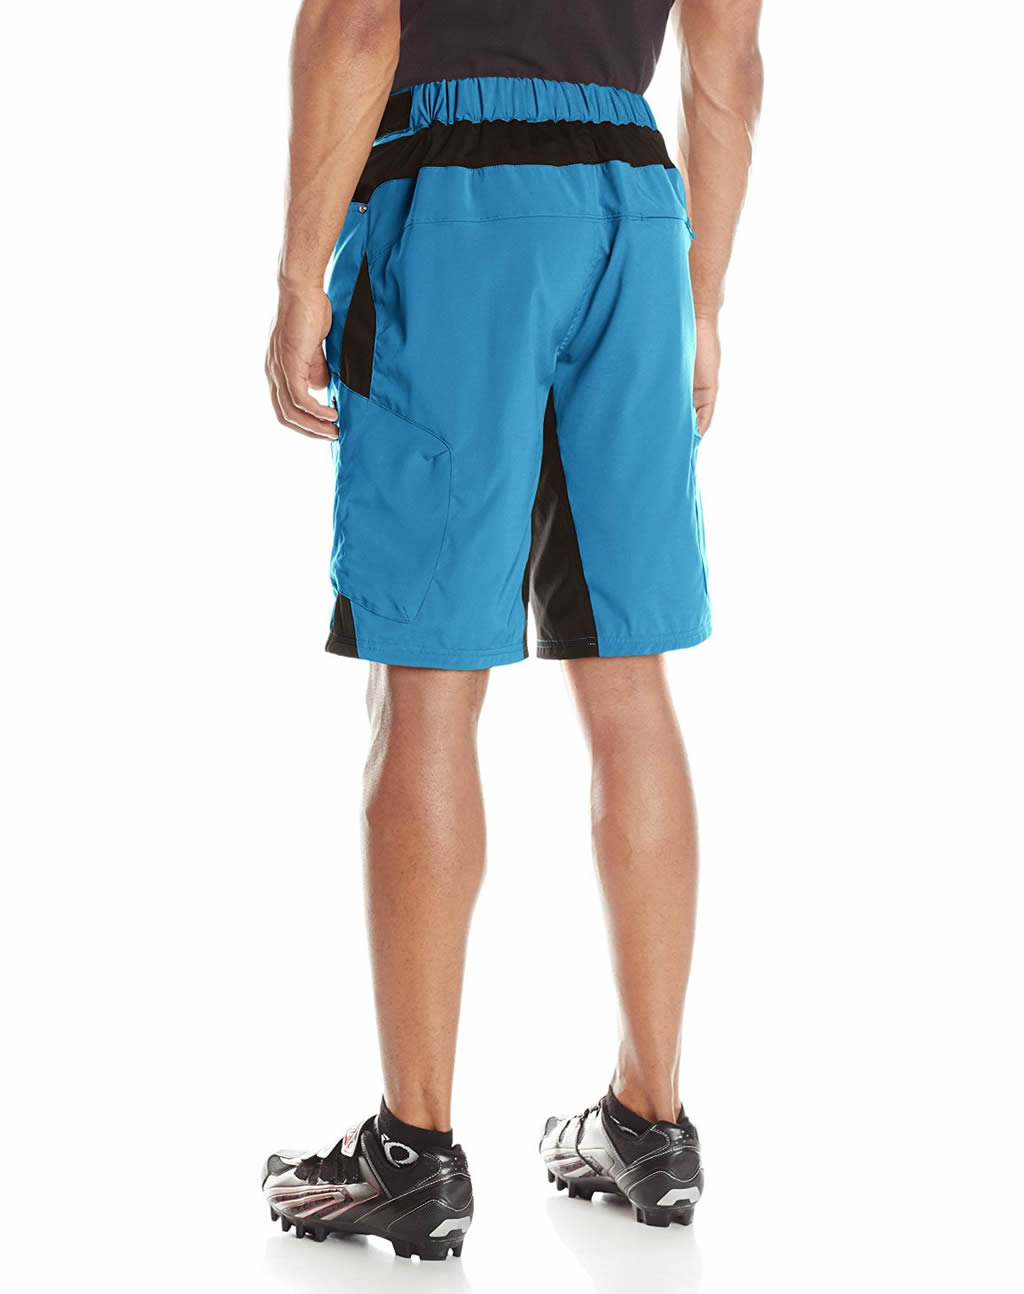 Blue ZOIC Men's Ether Cycling Shorts, Back